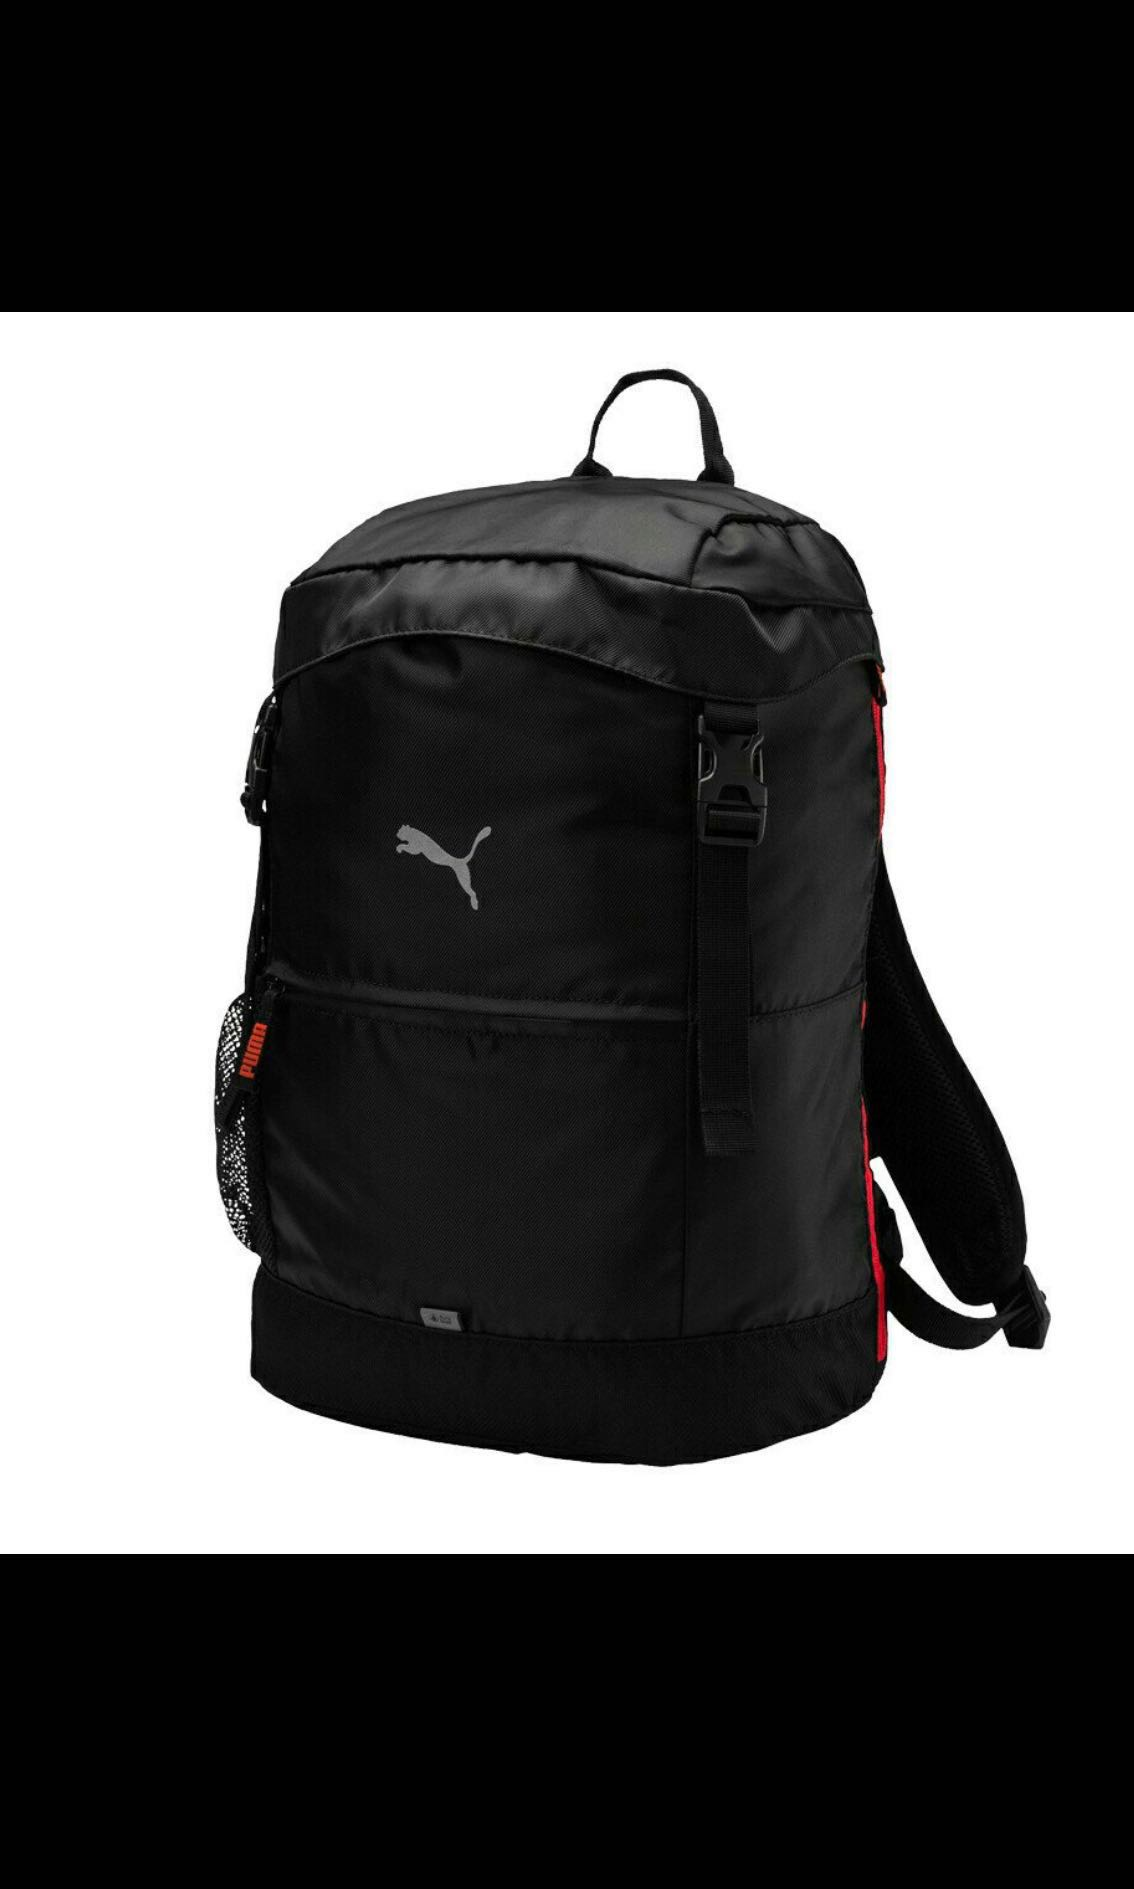 0deb94650e86 PUMA GOLF BACKPACK